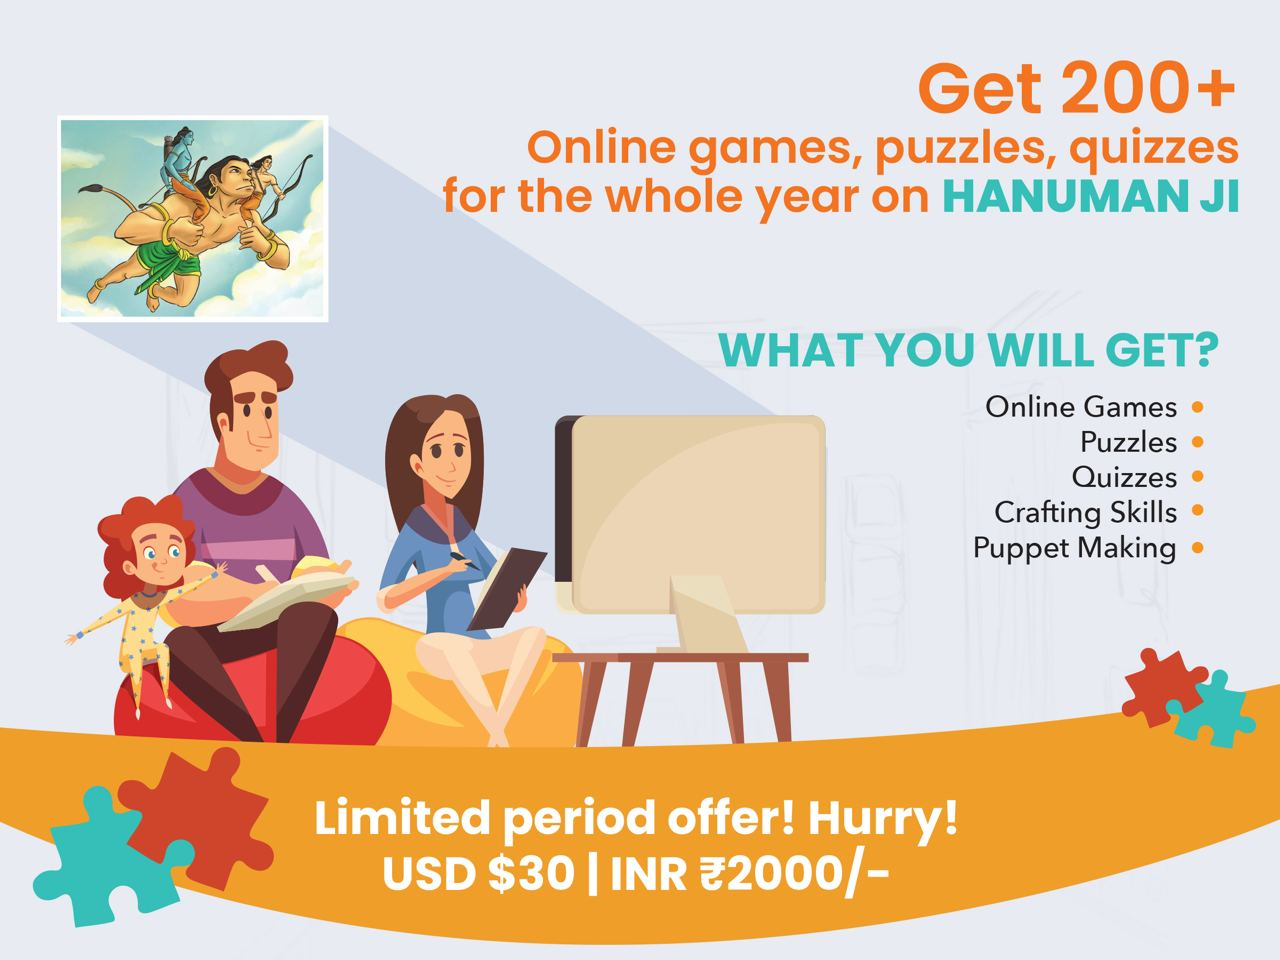 200+ Online Games, Puzzles, Quizzes for the whole year on Hanuman ji